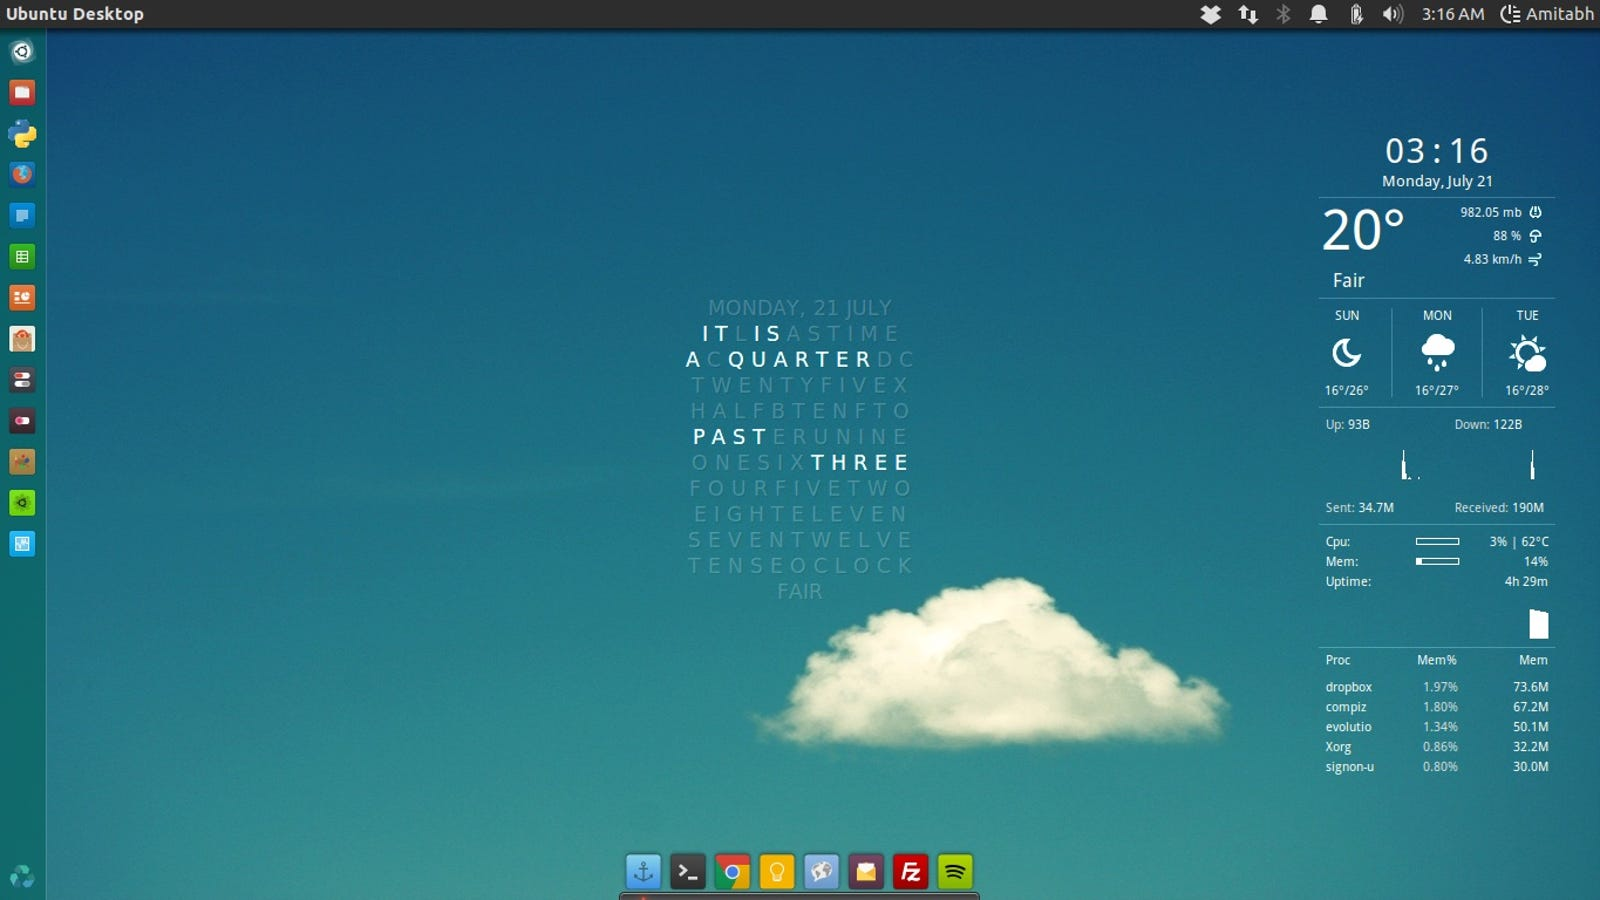 The Clear Skies Desktop